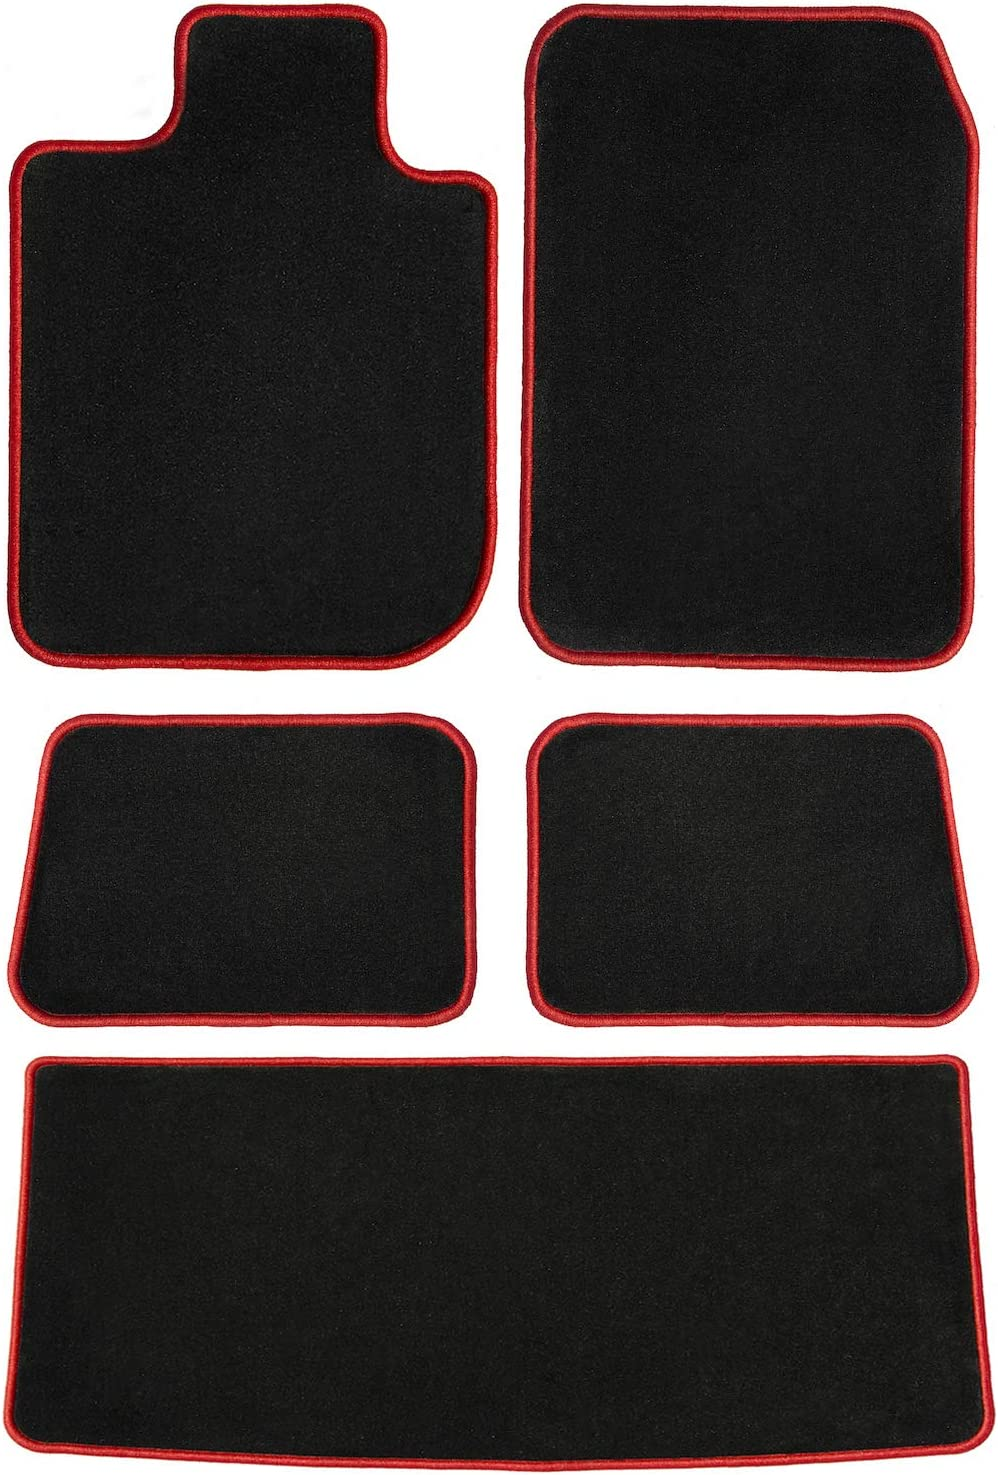 2010 to 2015 Vw Touran New Choice Of Black Rubber Tailored Car Floor Mats